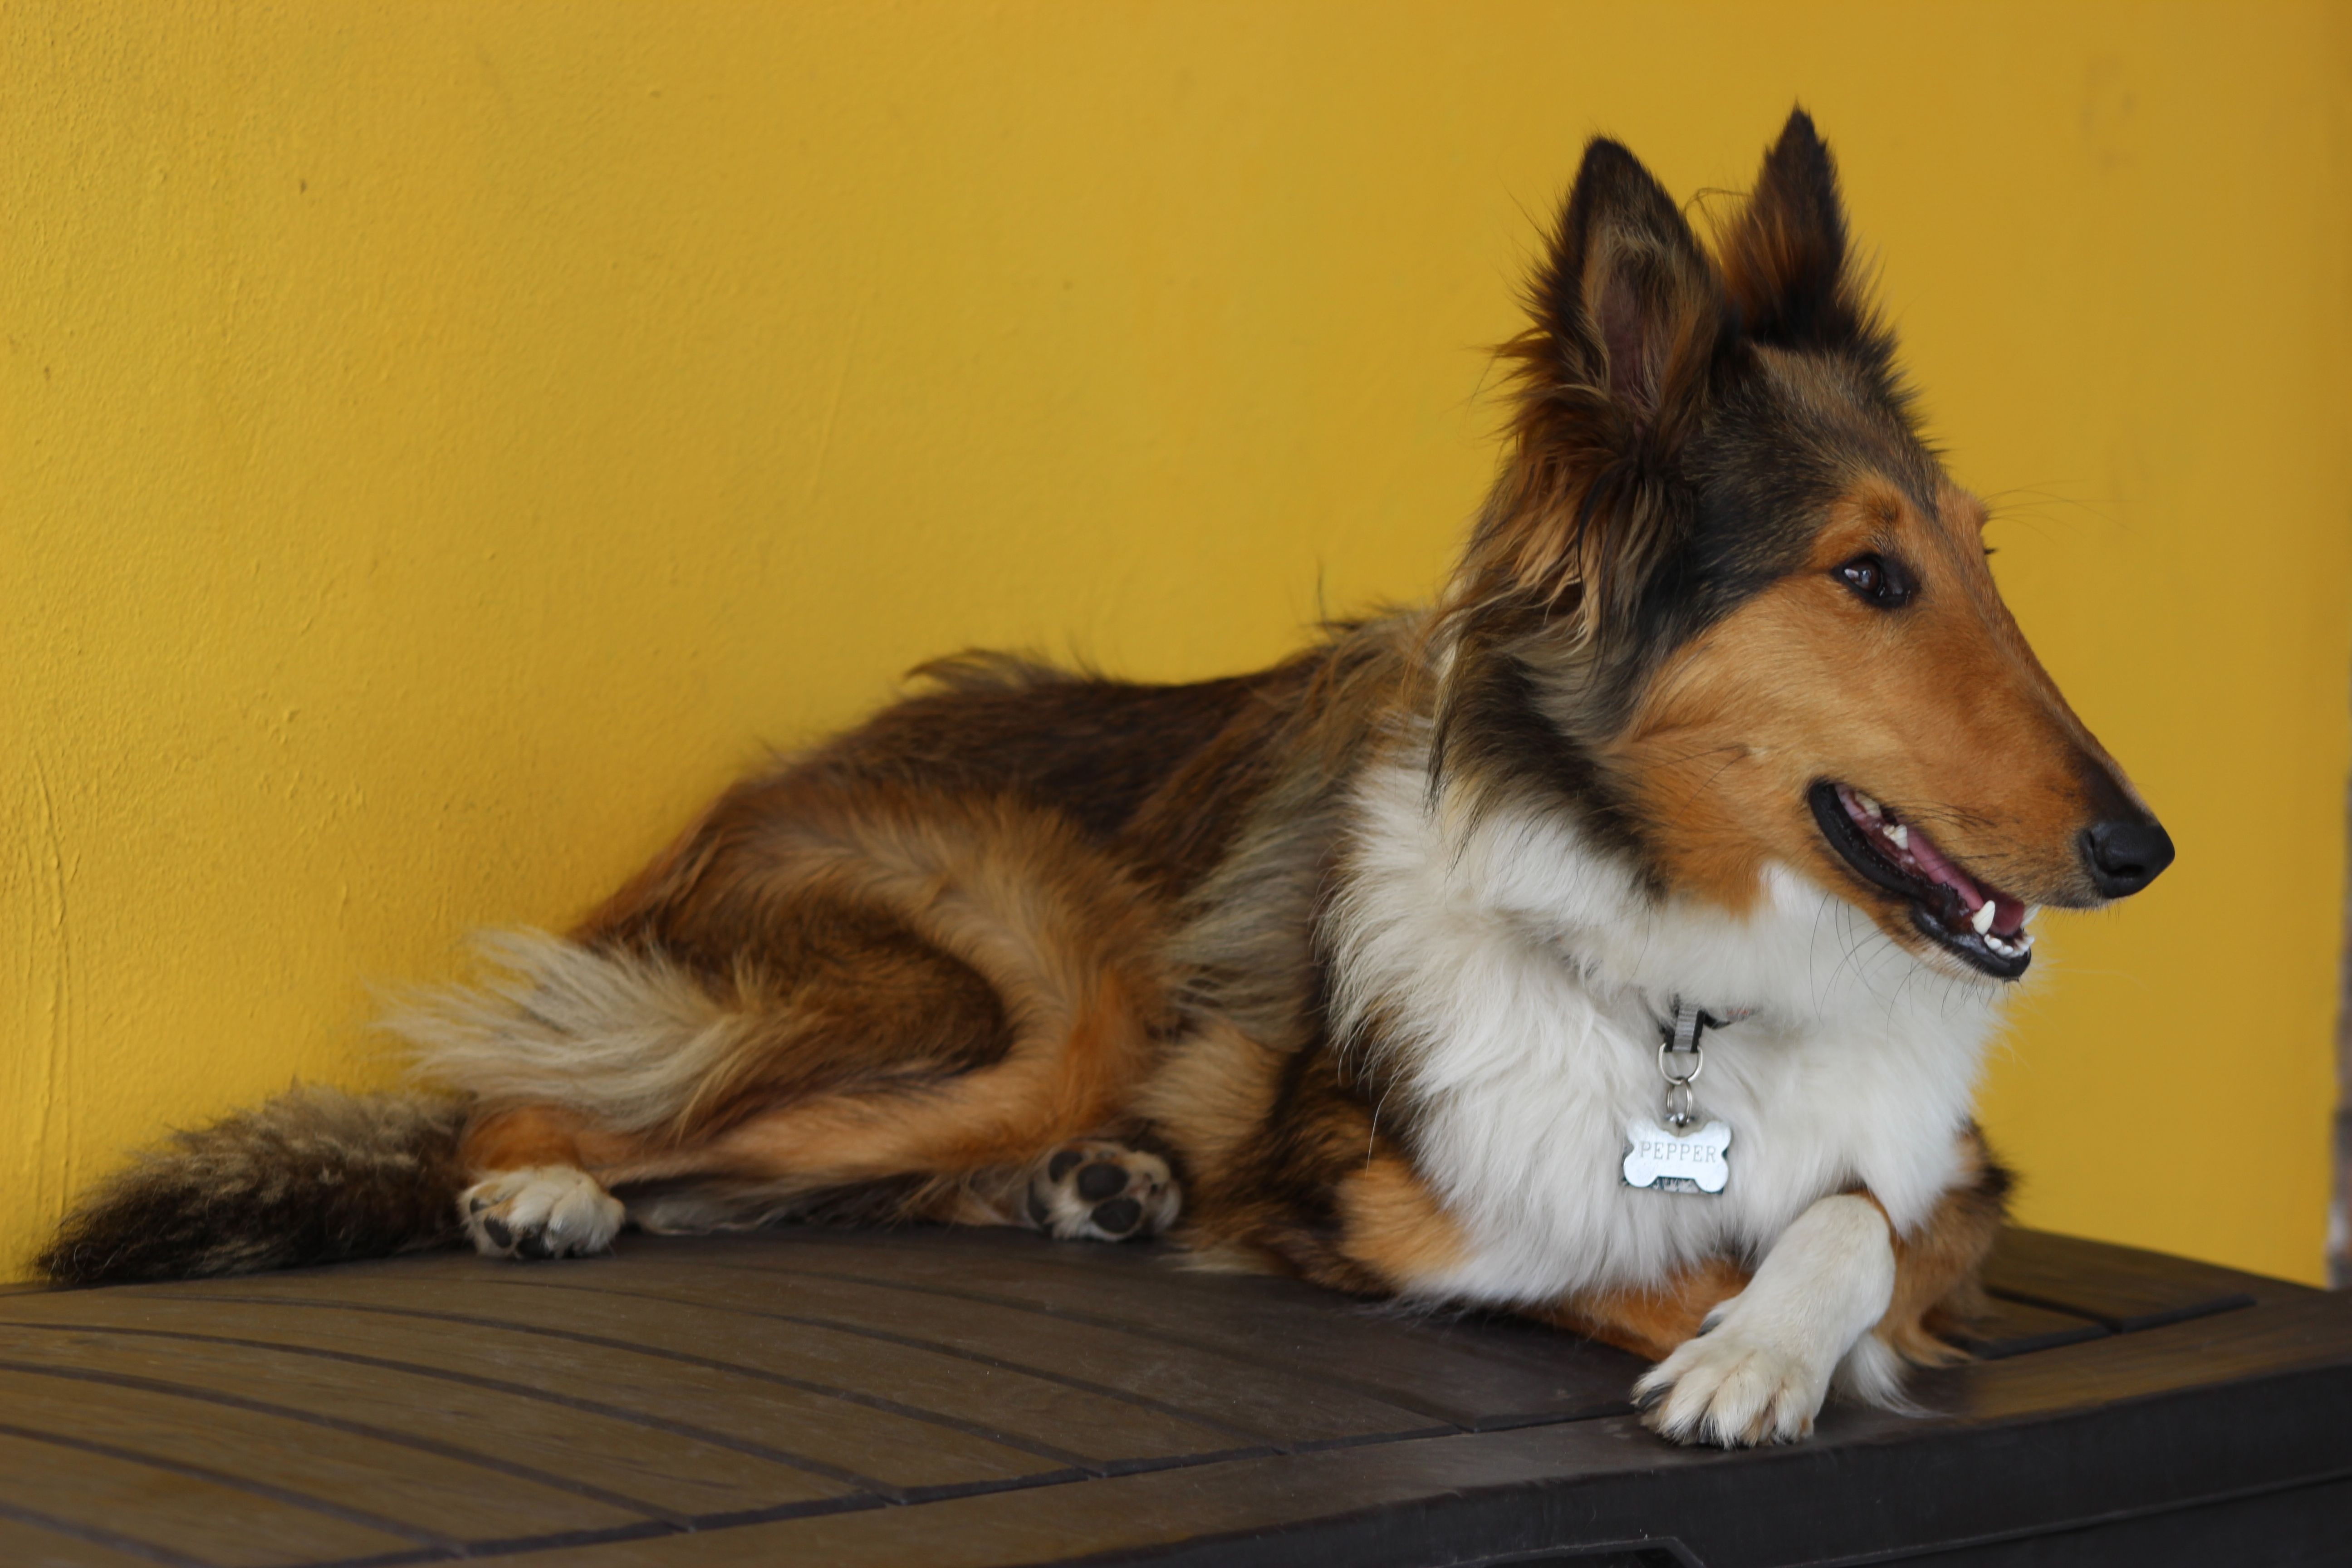 My lovely #Pepper never looses the style, with her legs crossed #Collie